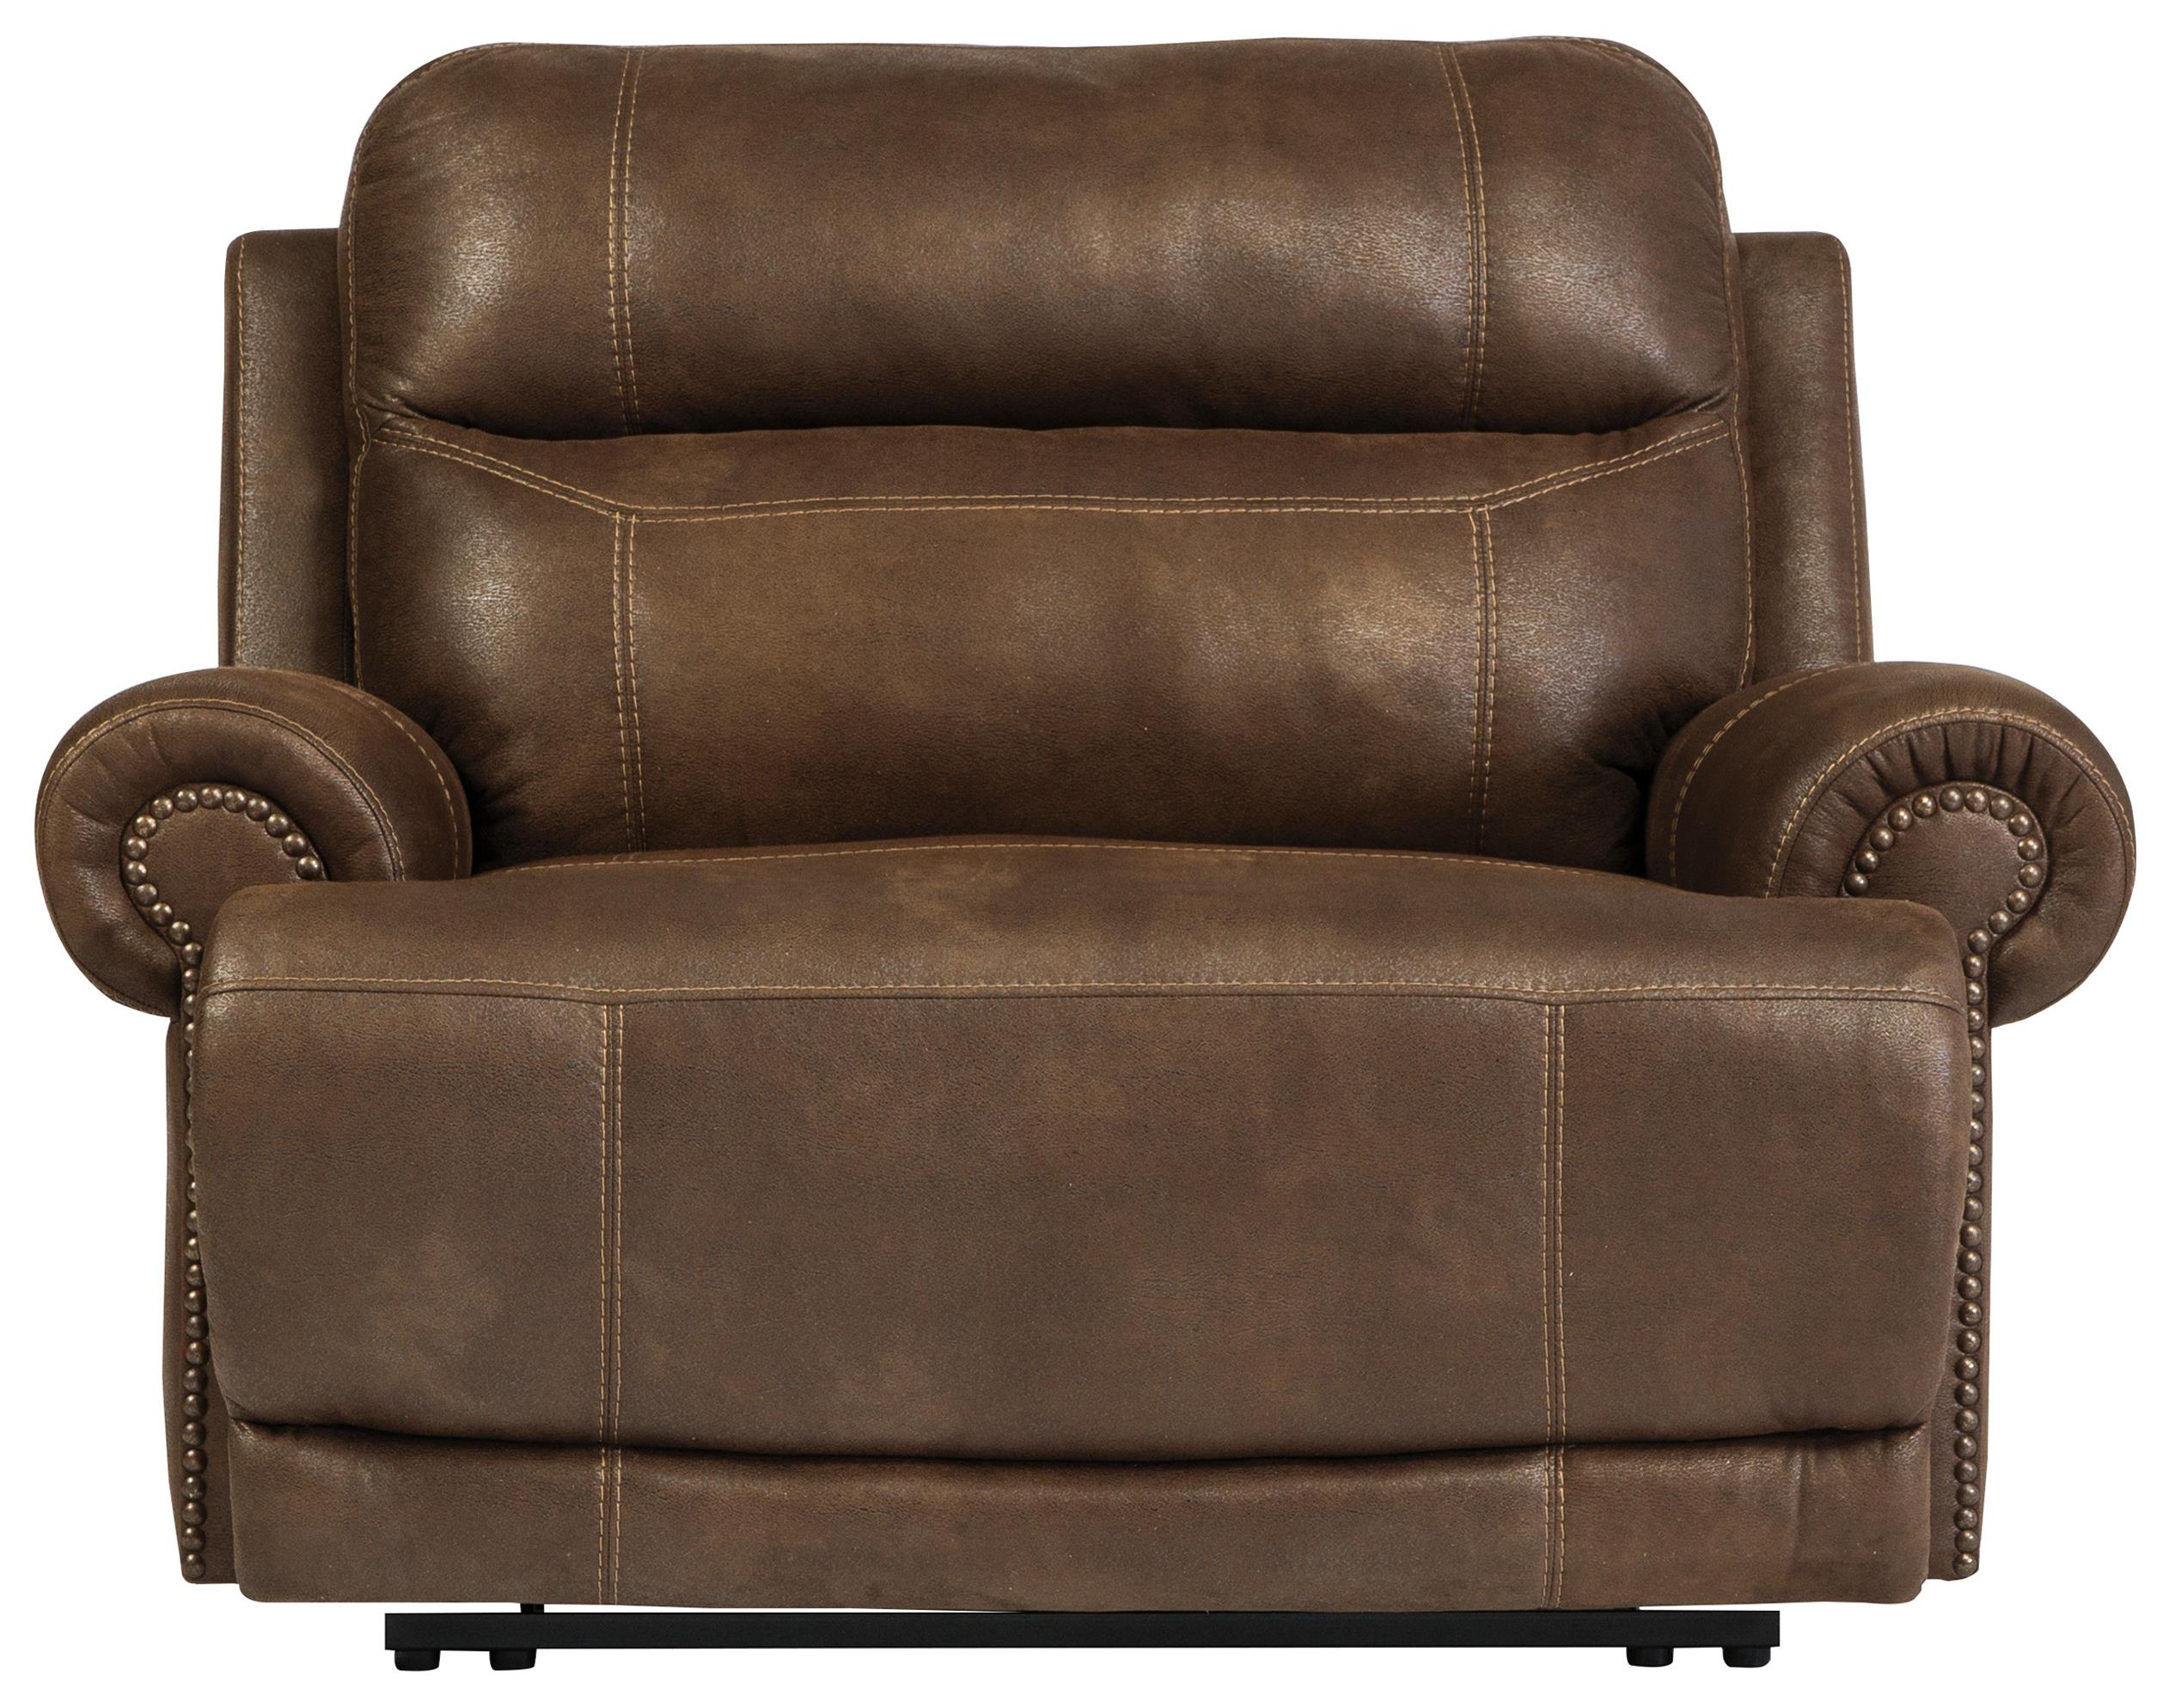 Signature Design by Ashley Austere - Brown Zero Wall Power Wide Recliner - Item Number: 3840082